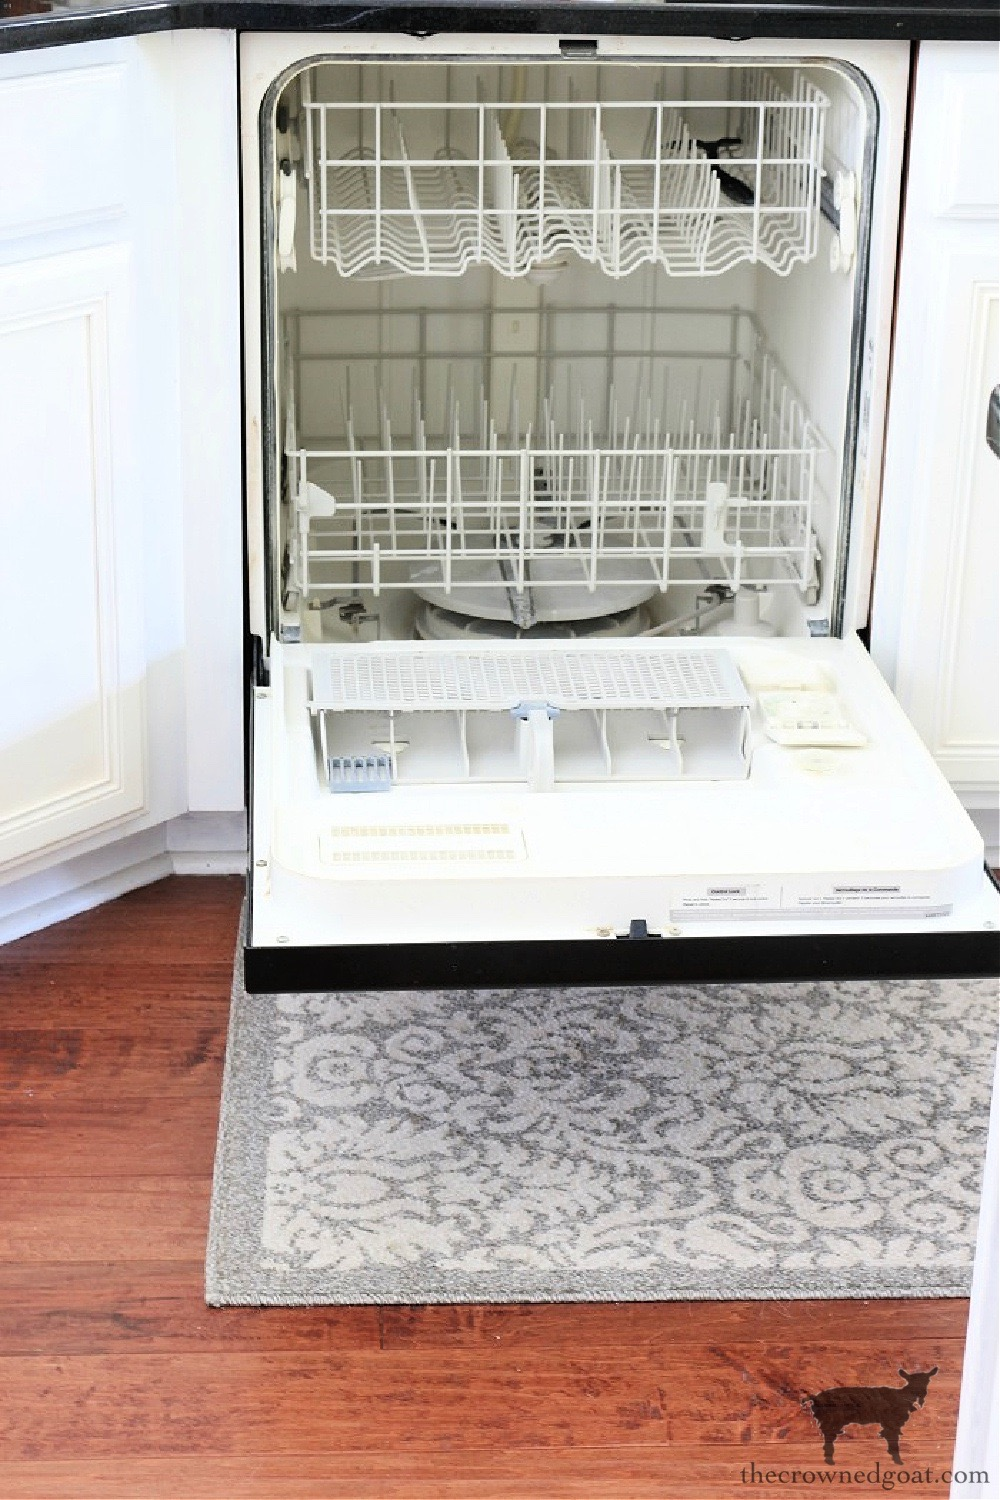 Simple Ways to Clean Organize and Maintain Your Kitchen-Morning Dishwasher Routine-The Crowned-Goat.jpg